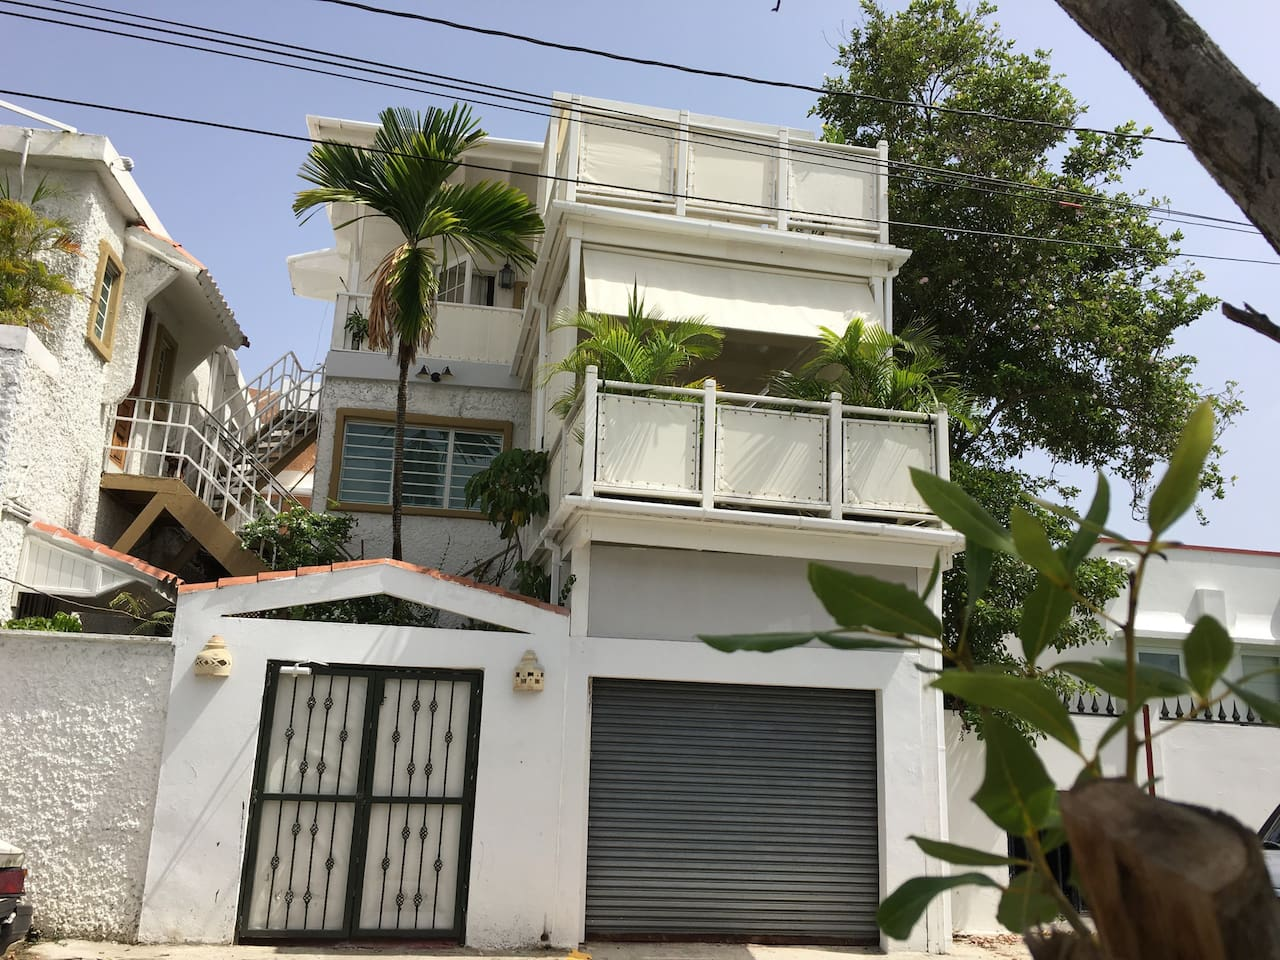 Studio is on third floor.  There is an outside staircase to guide you up. There is a balcony overlooking the trees in our neighborhood.